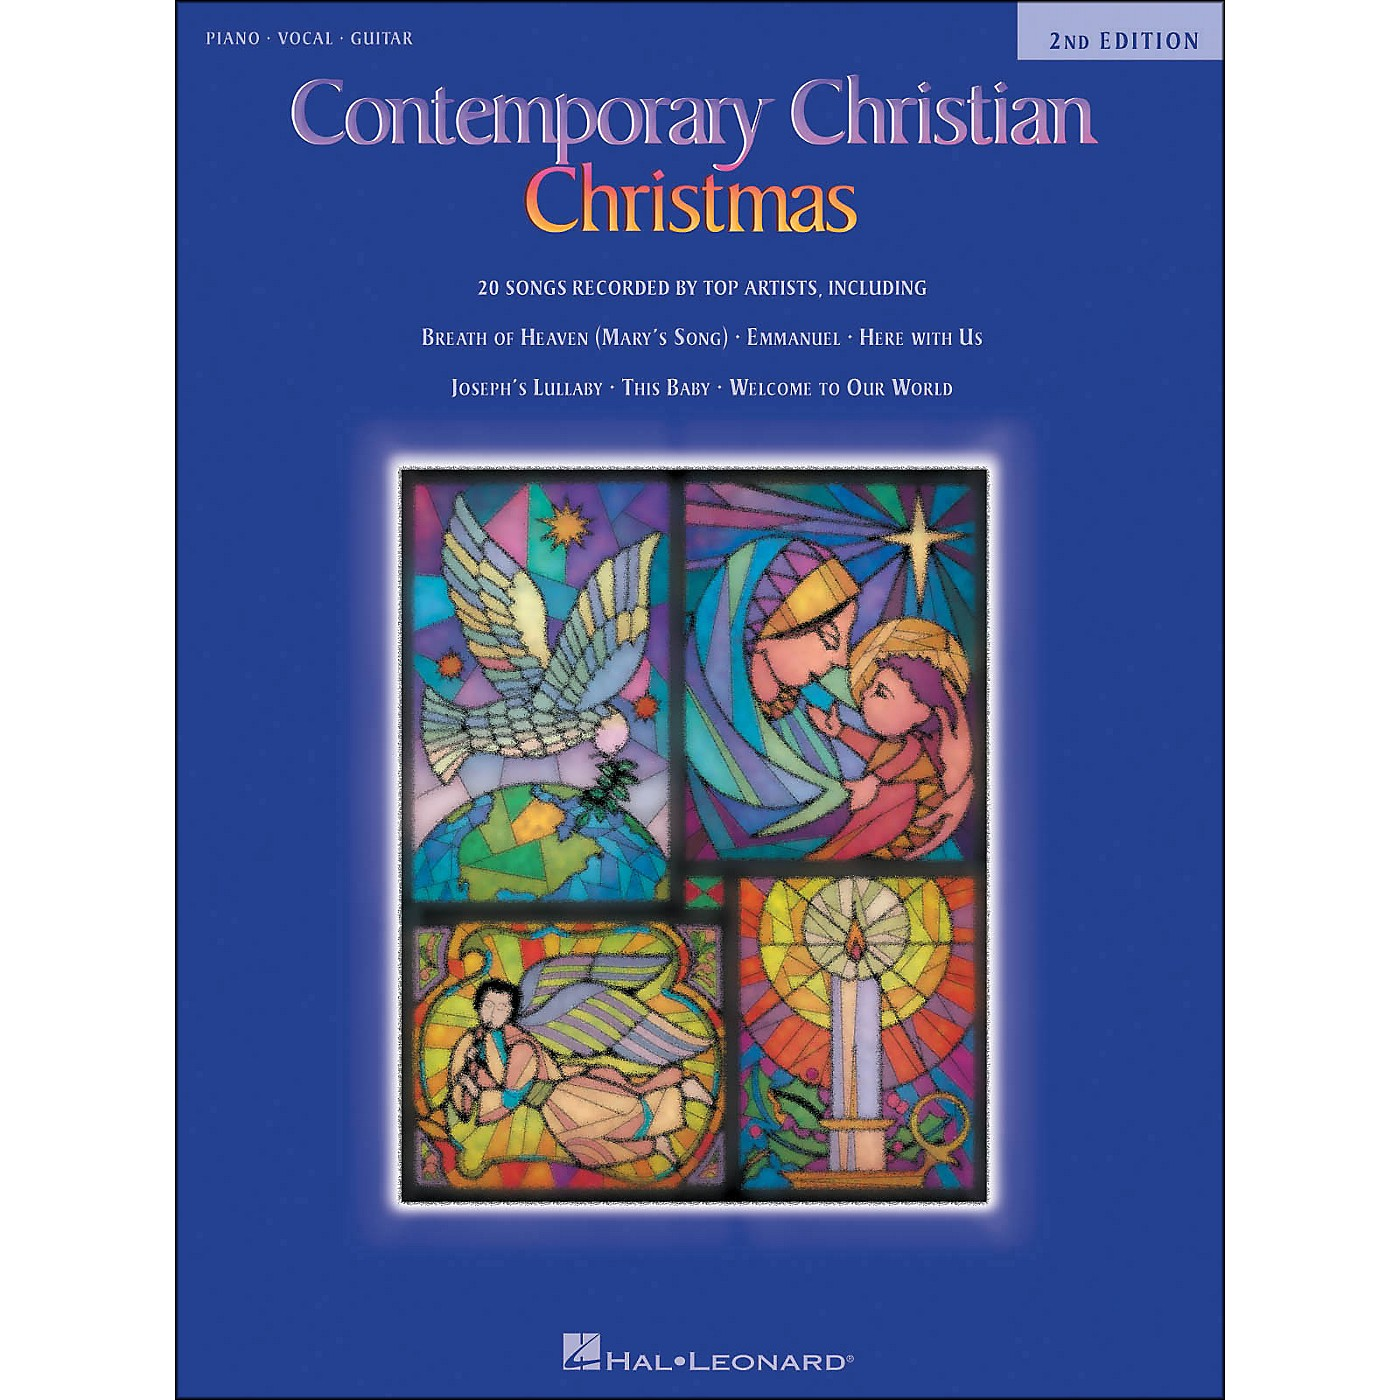 Hal Leonard Contemporary Christian Christmas 2nd Edition arranged for piano, vocal, and guitar (P/V/G) thumbnail